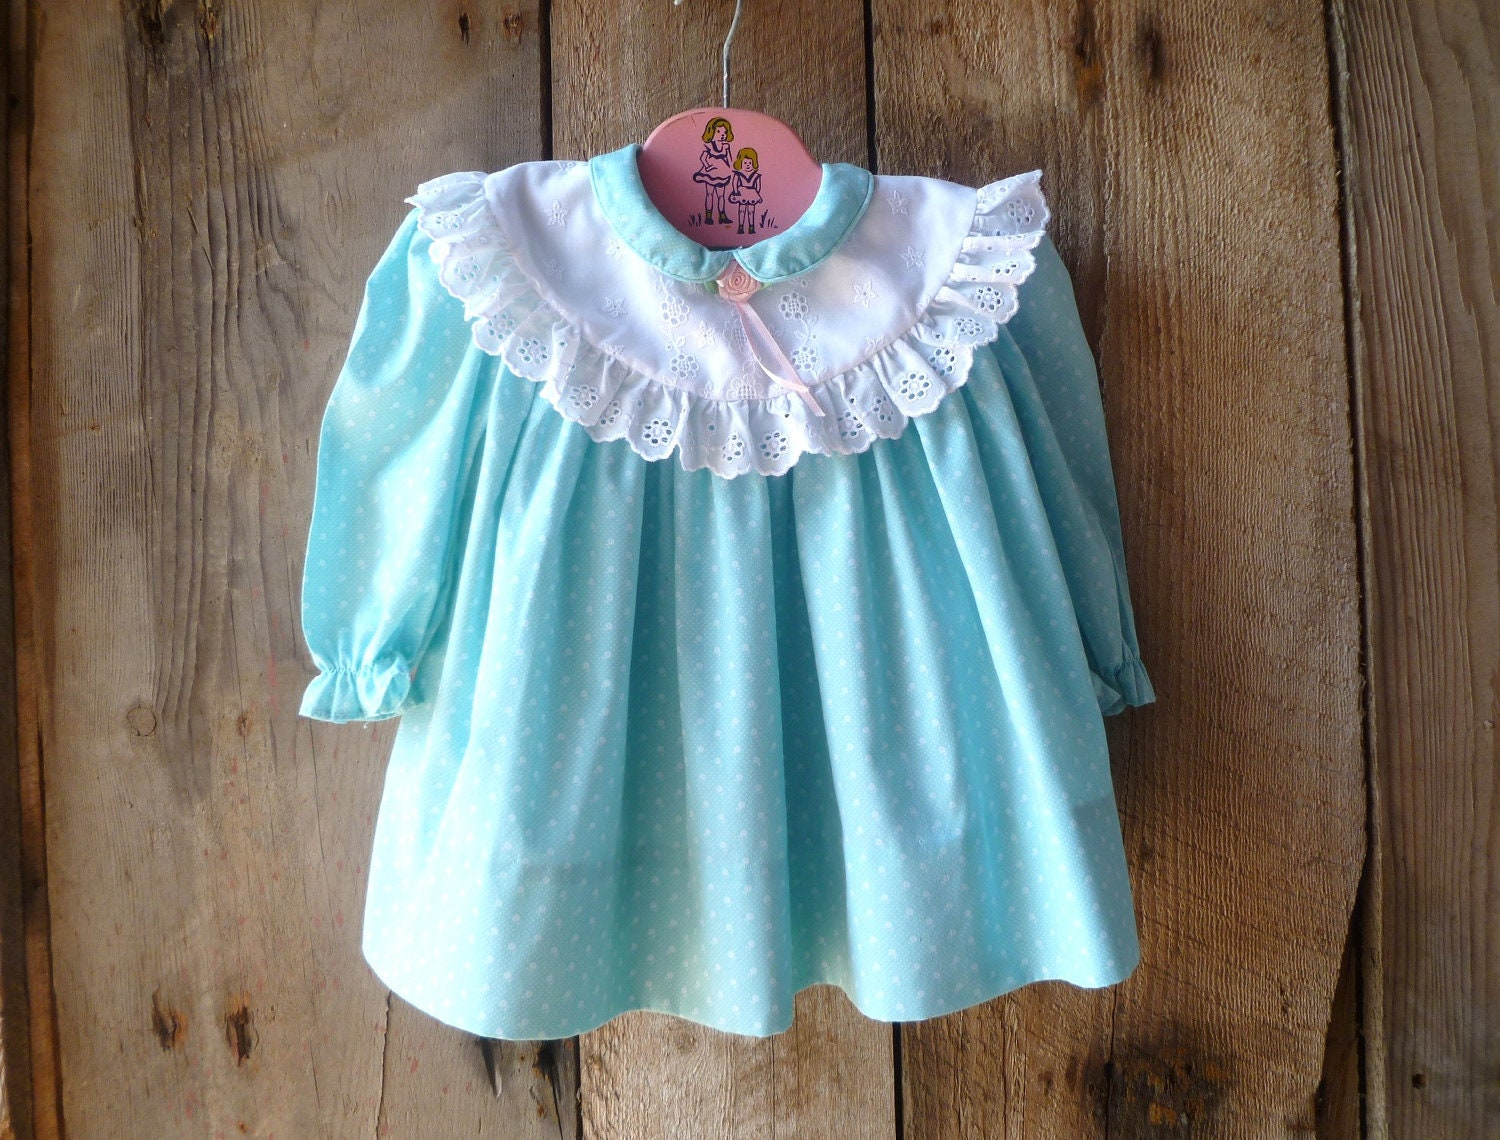 vintage Polly Flinders baby dress // size 12-18 months - farmhousevoguekids